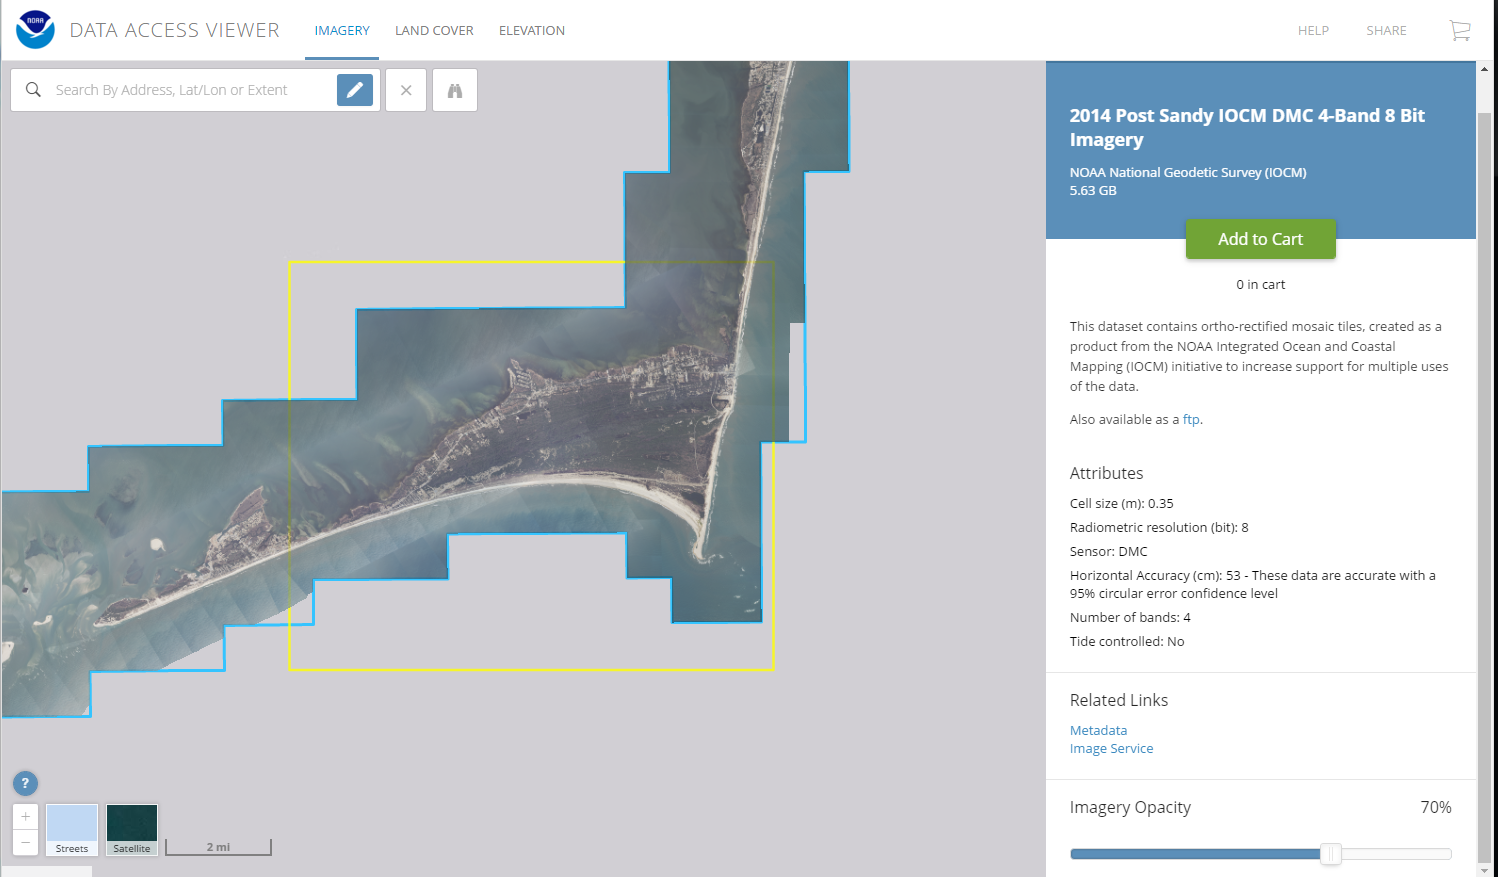 Example of image services for a 4 band imagery data set you can see